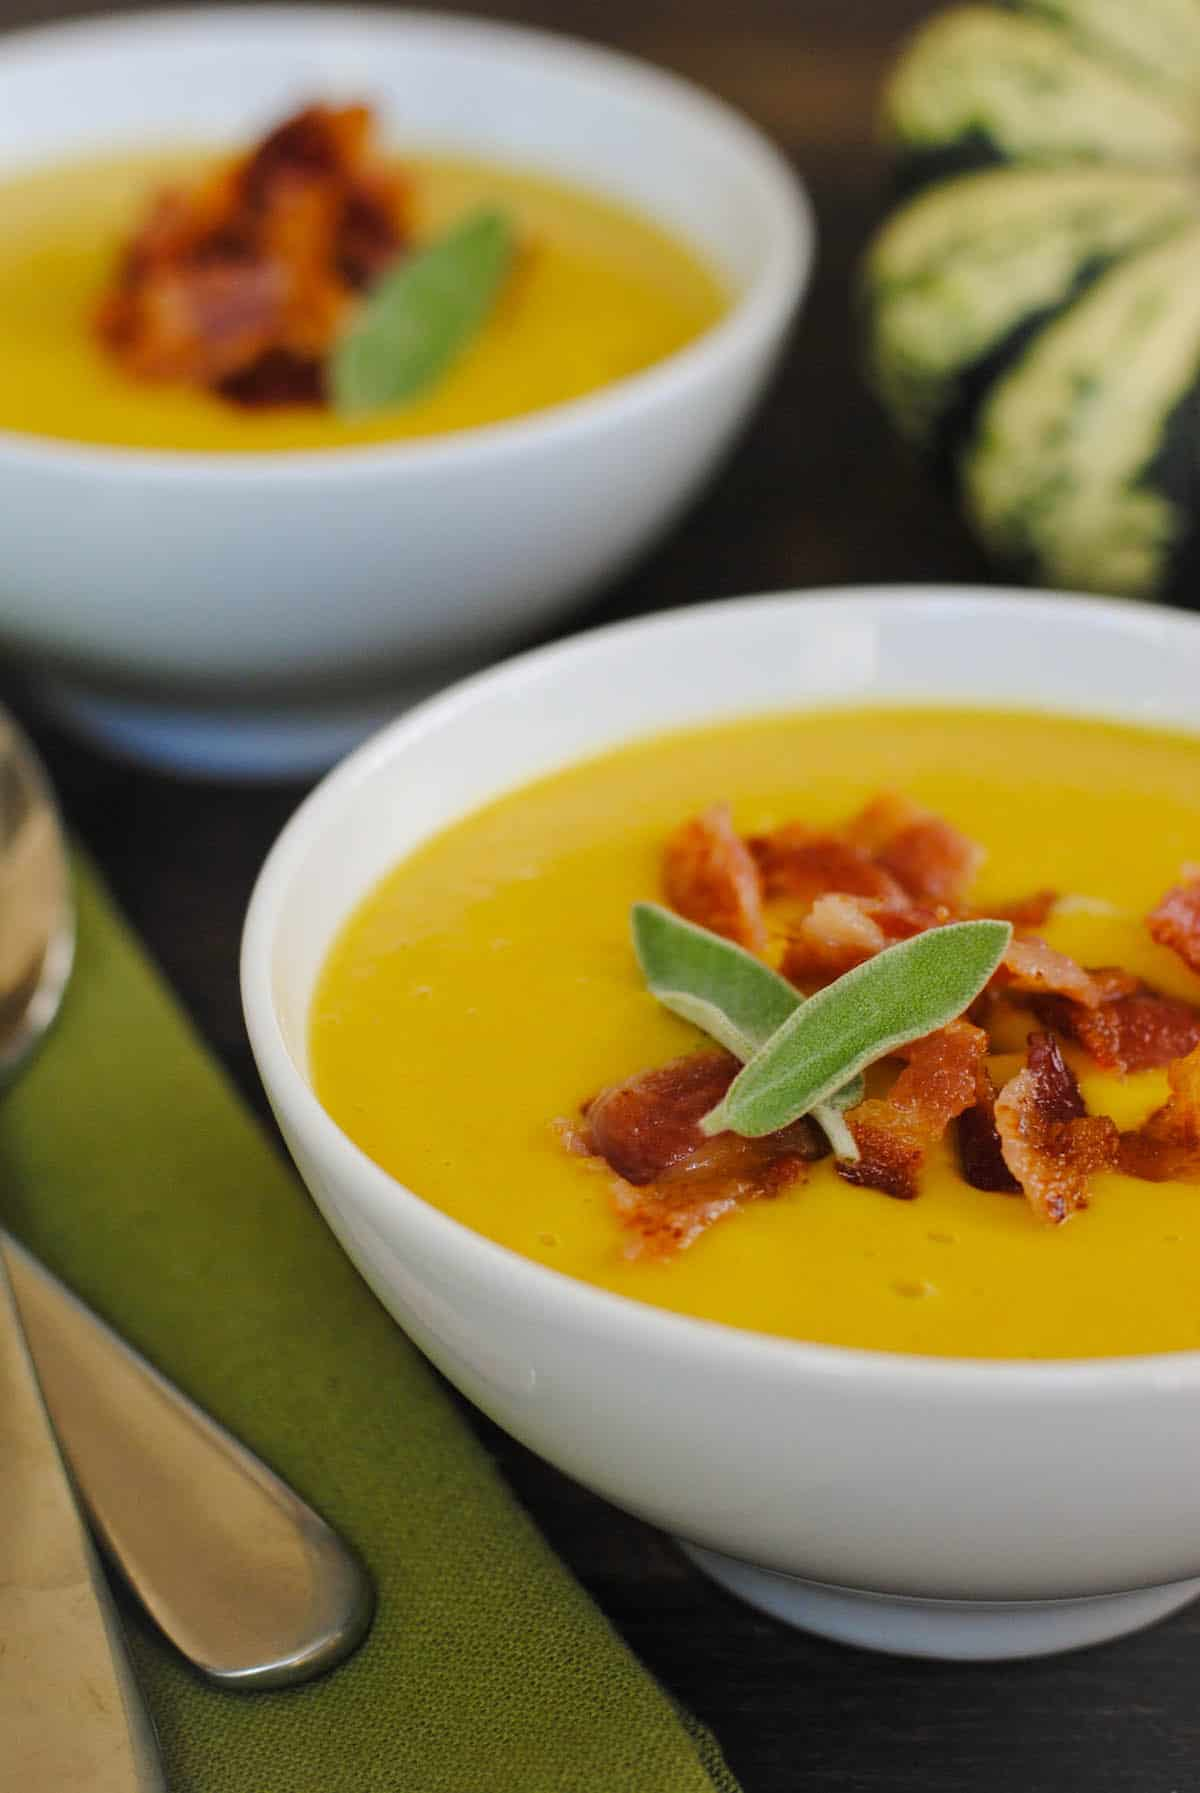 Two bowls of squash soup, topped with bacon and sage leaves.